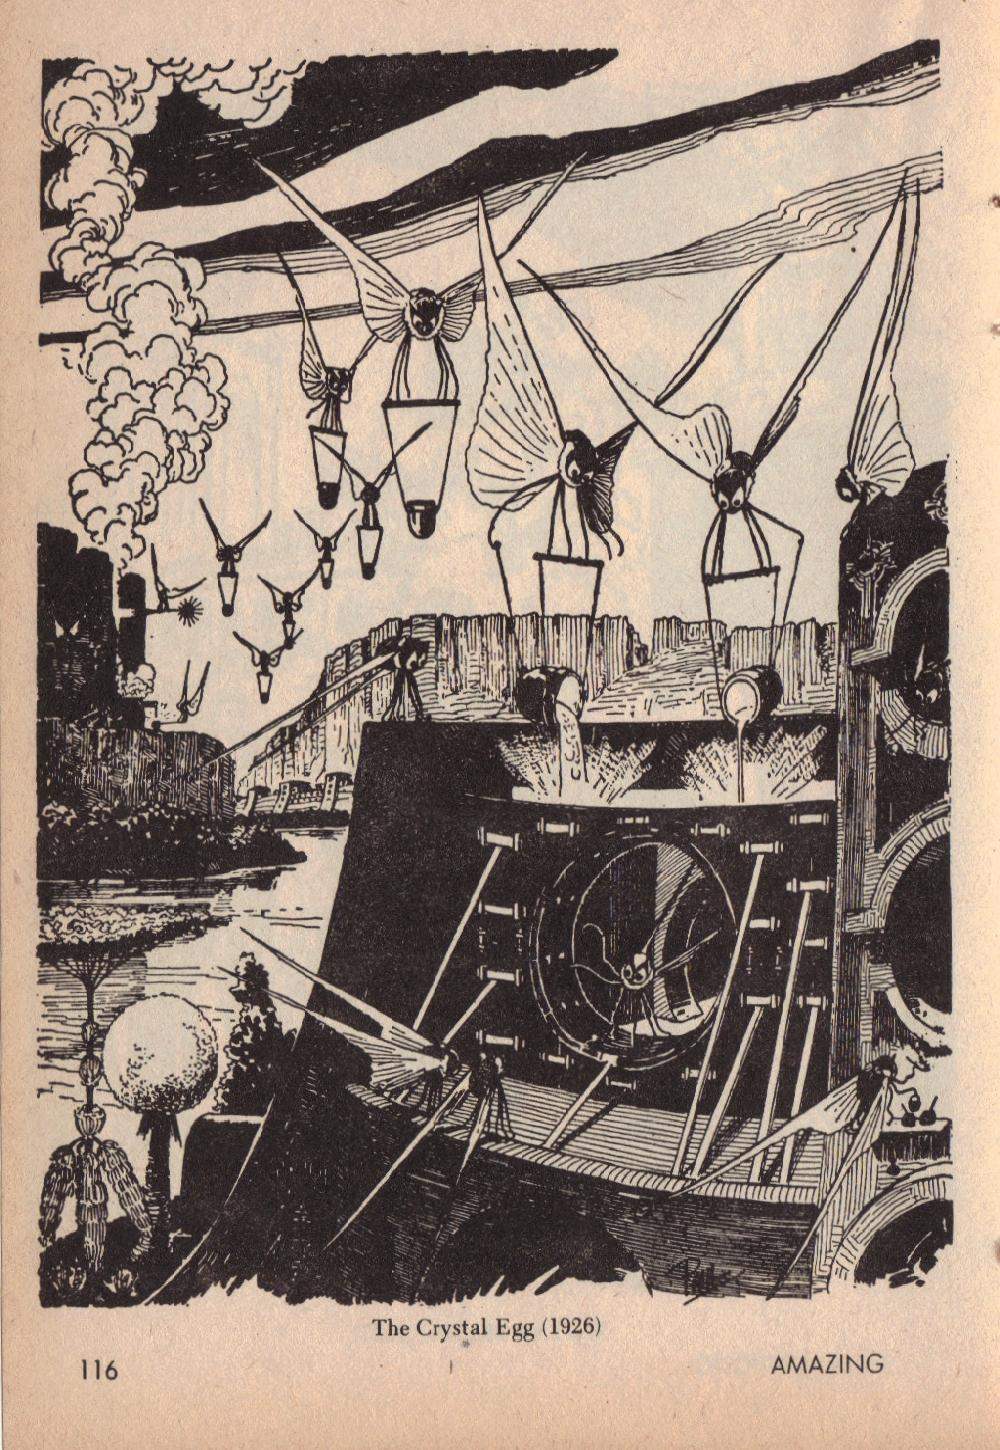 Frank R Paul - H.G. Wells Illustrations (Published in Amazing Stories,April 1966, page 116